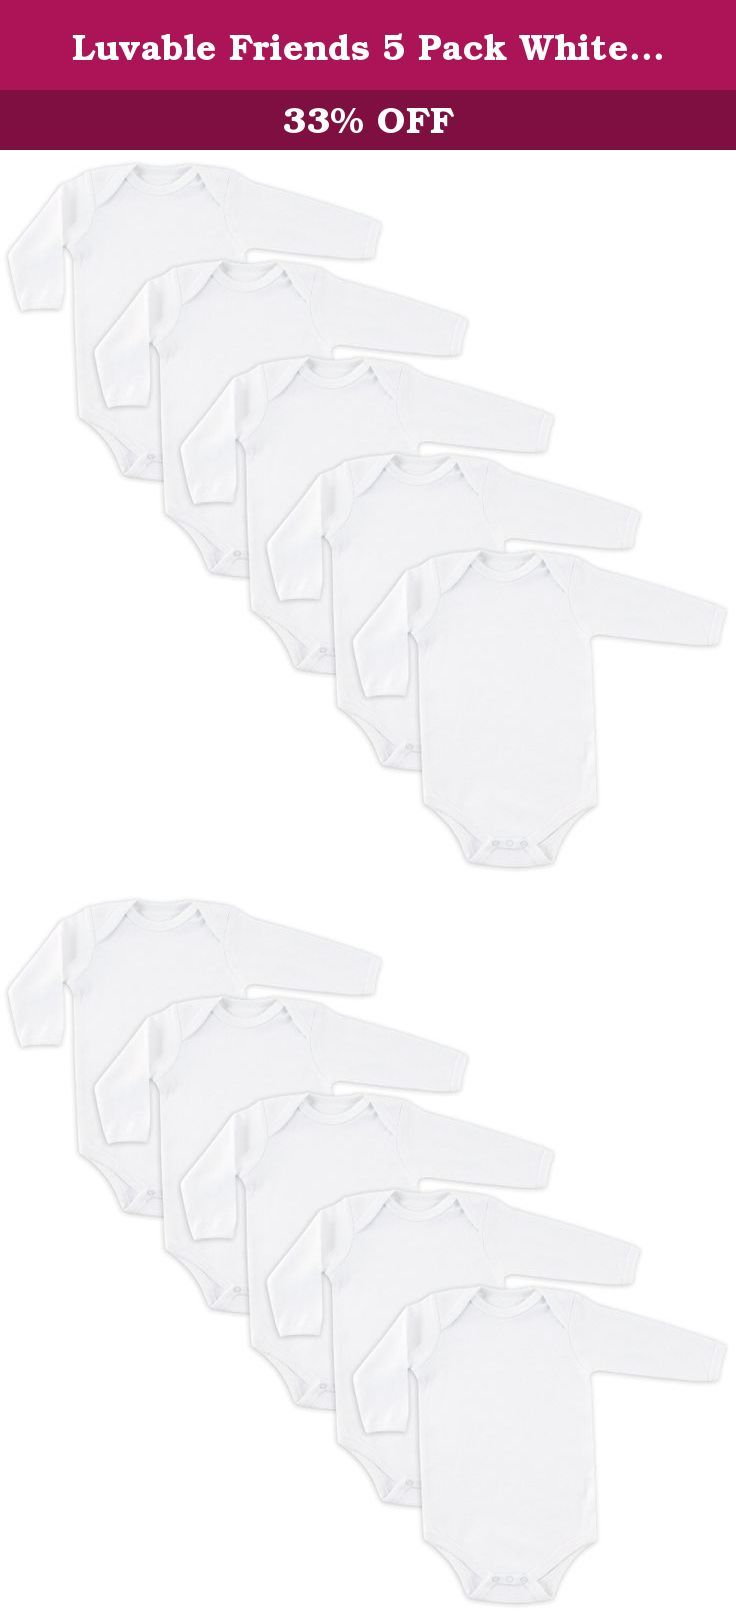 Luvable Friends 5 Pack White Long Sleeve Bodysuit. Luvable Friends 5-Pack Long Sleeve Bodysuits are made of 100% cotton for the softest touch on your baby's gentle skin. Bodysuits are essential to any baby's wardrobe, and these bodysuits are so comfortable that they can be used as underwear or even on their own. Long sleeves keeps baby warm in the cooloer months and make the perfect layering pair.